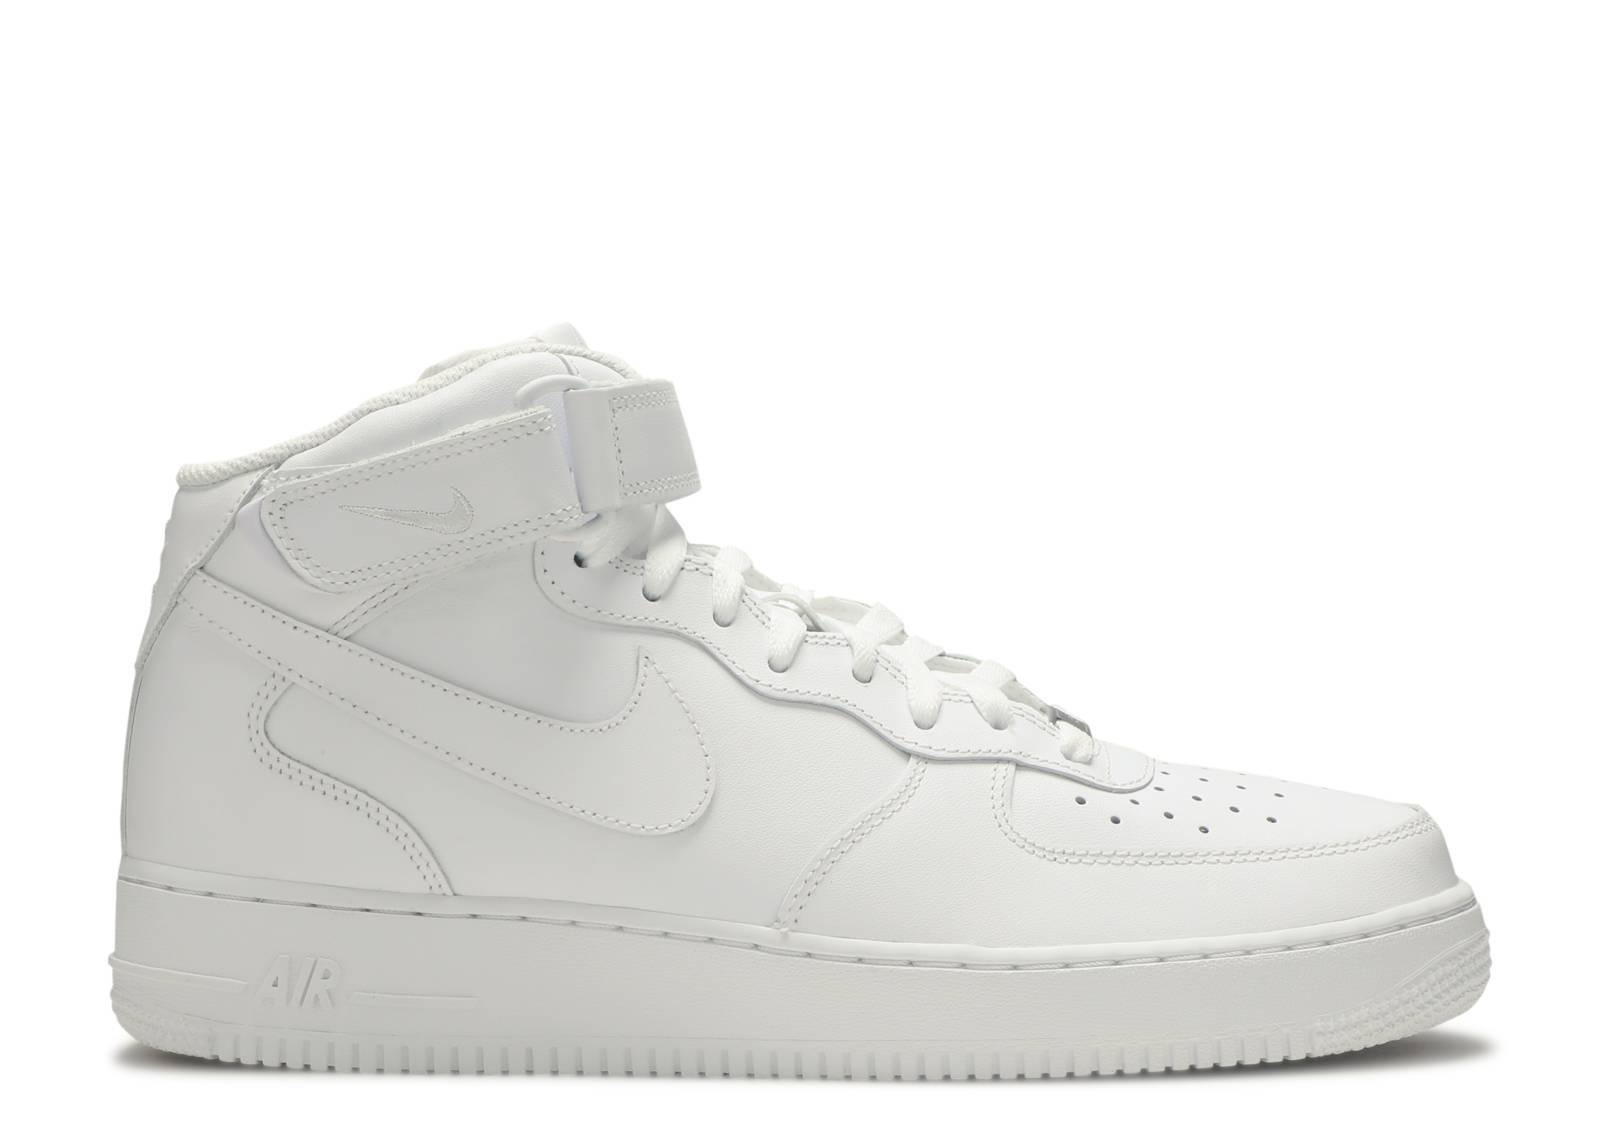 f96228f32 Air Force 1 Mid 07 - Nike - 315123 111 - white/white | Flight Club